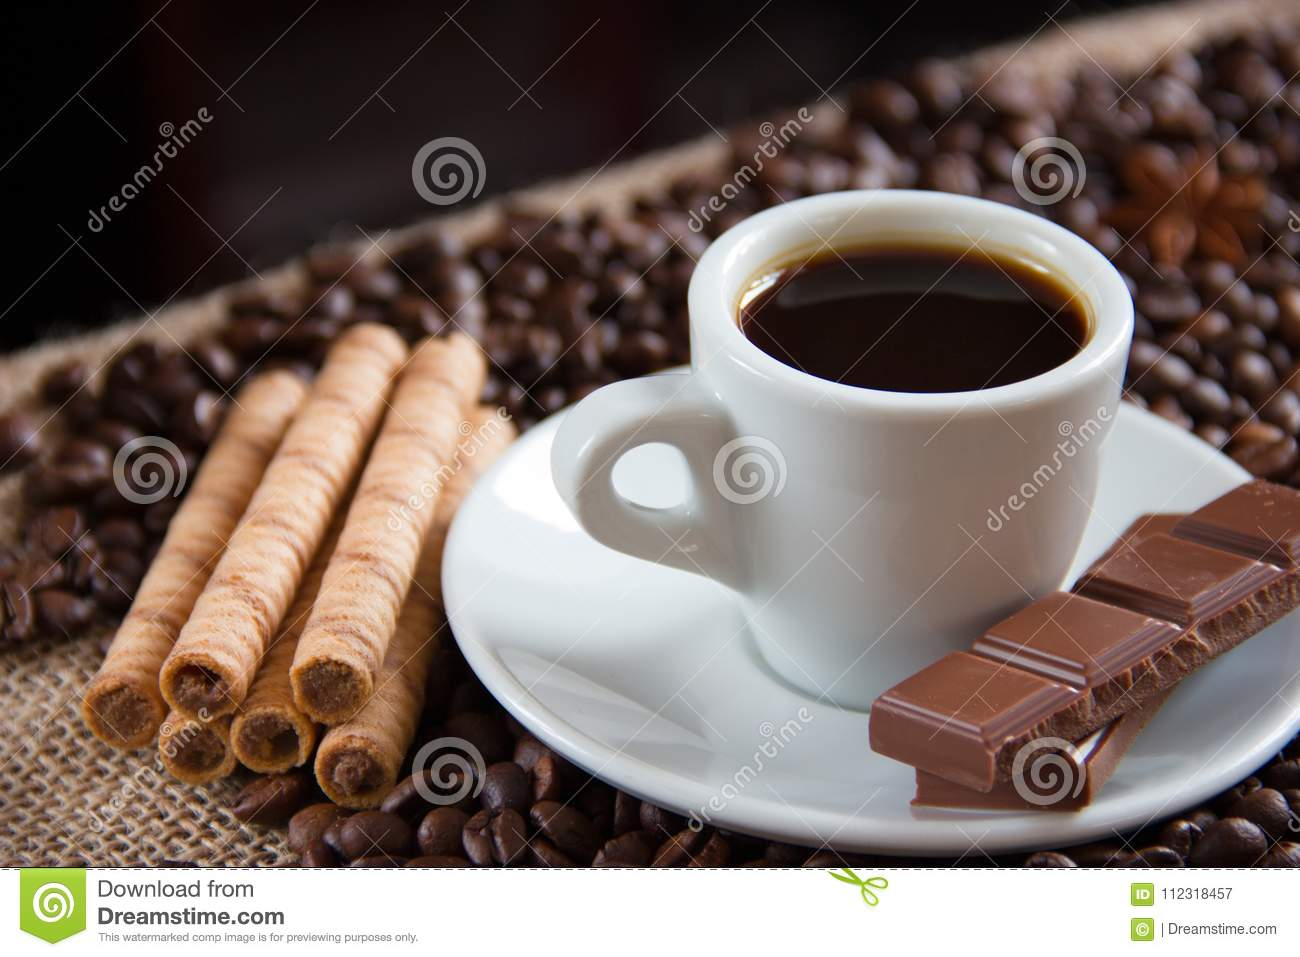 Fried Coffee Grains With Espresso Cup Milk Chocolate And Biscuits Stock Image - Image of ...